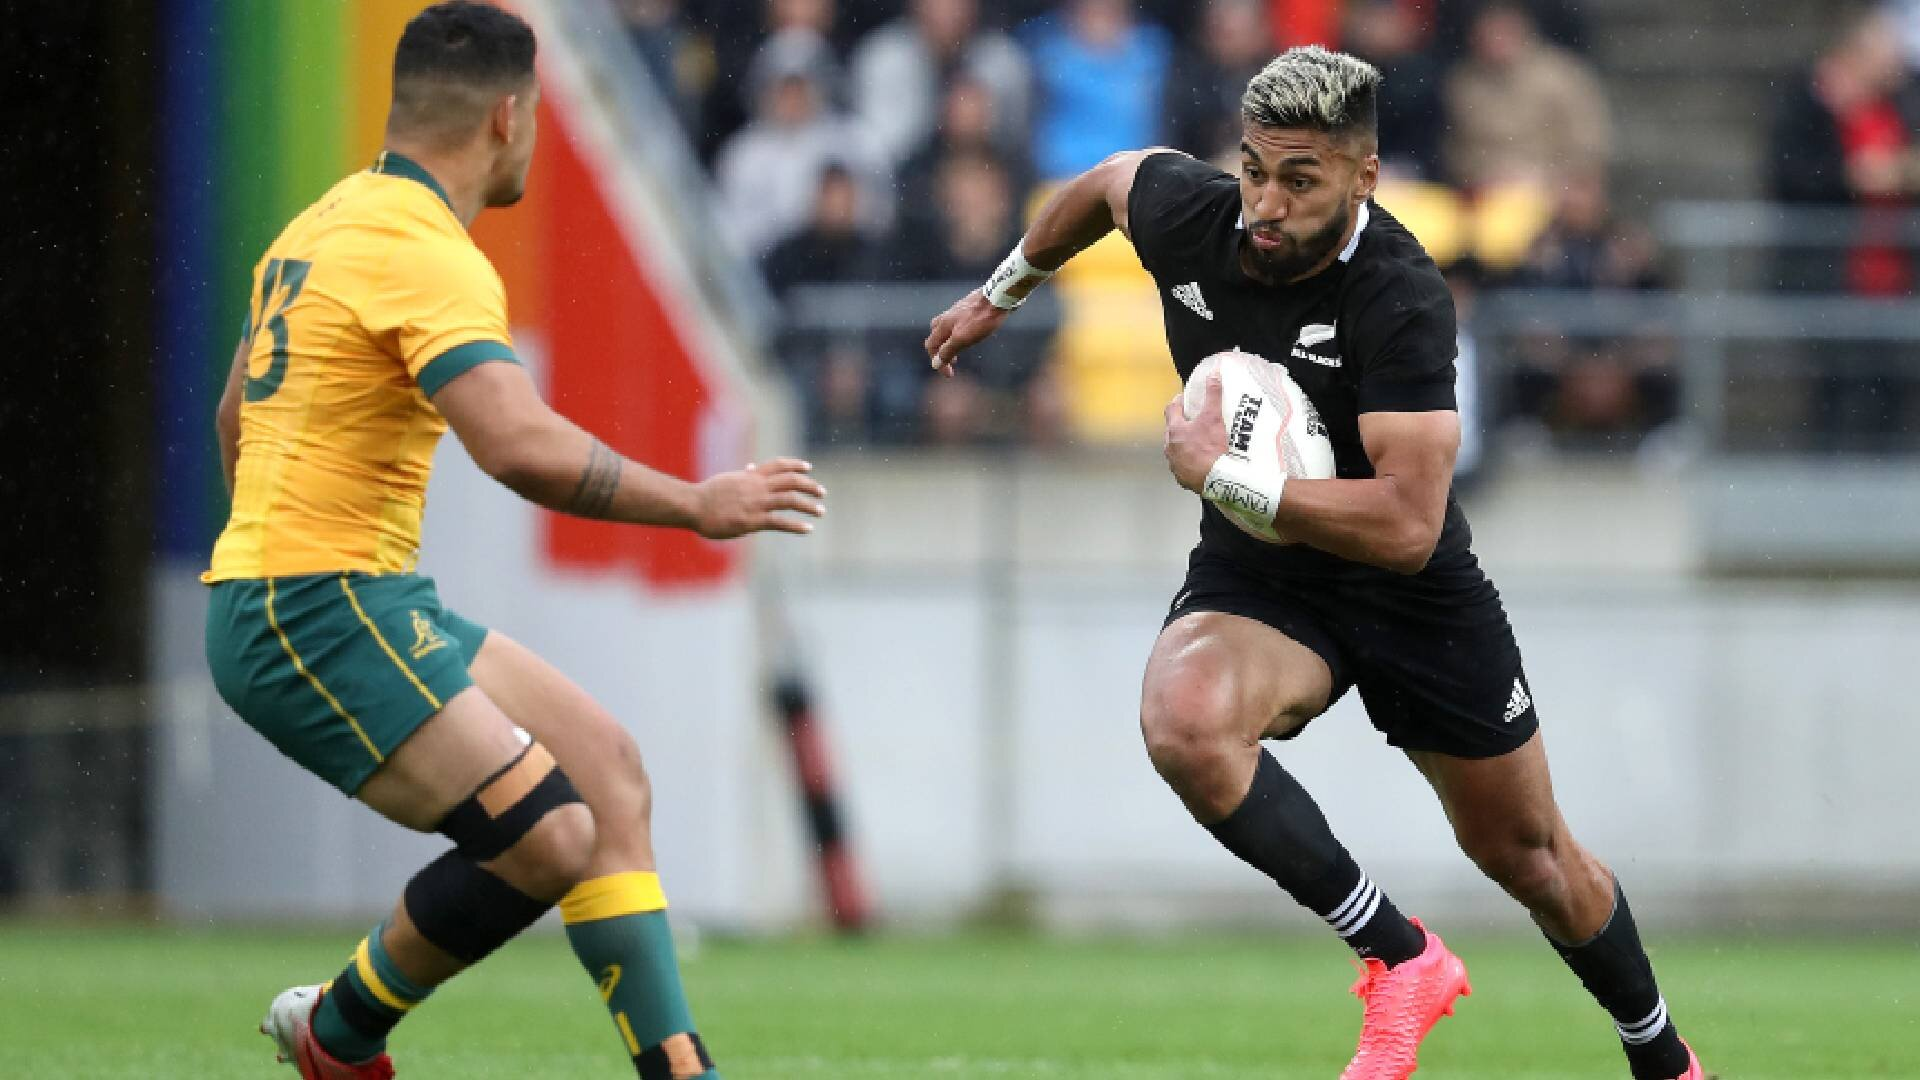 'He's an 80-minute player': The point of difference that could keep Rieko Ioane in the All Blacks this weekend